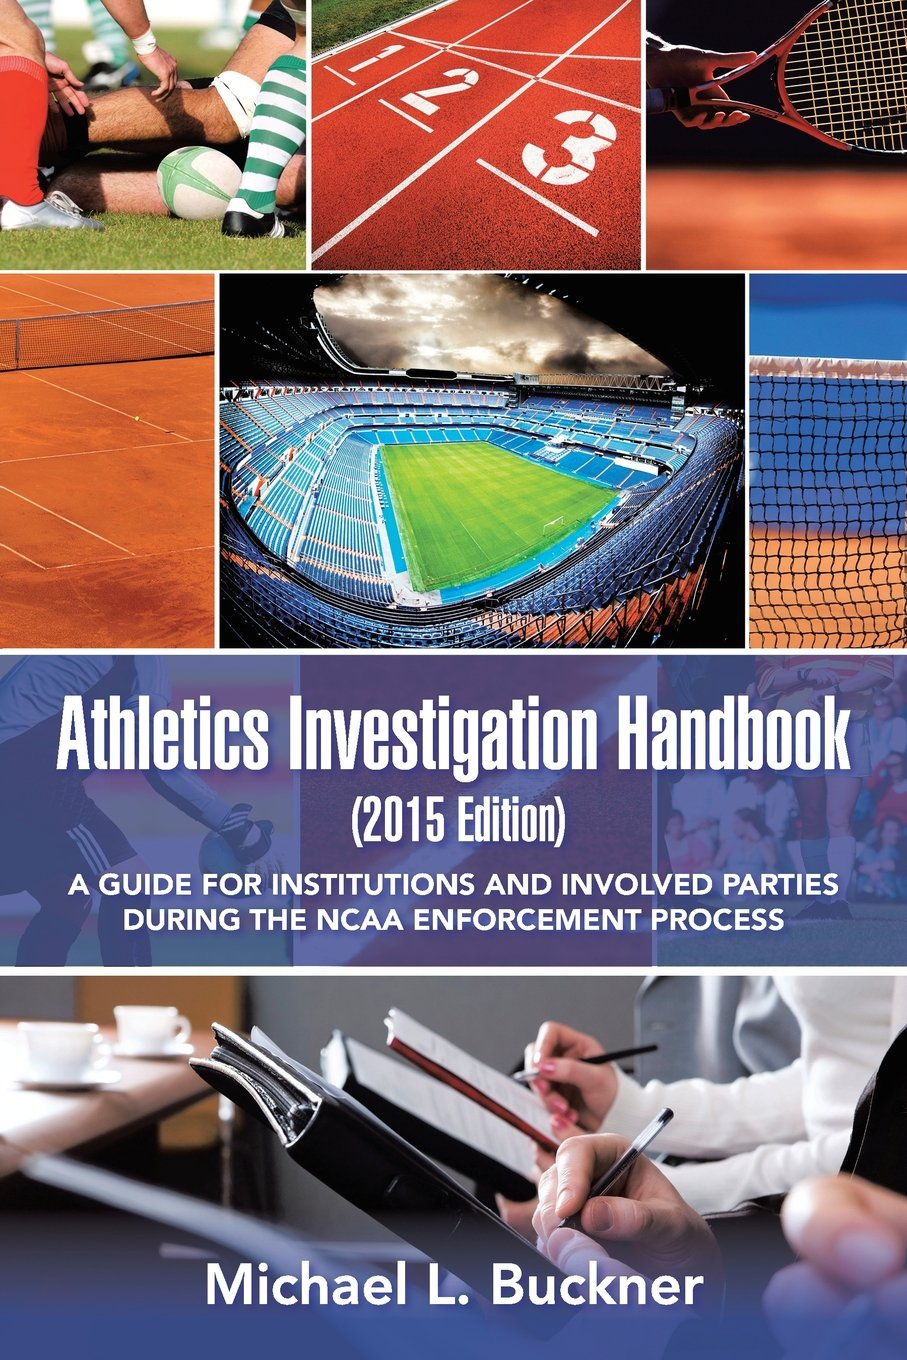 Download Athletics Investigation Handbook (2015 Edition): A Guide for Institutions and Involved Parties During the NCAA Enforcement Process ebook